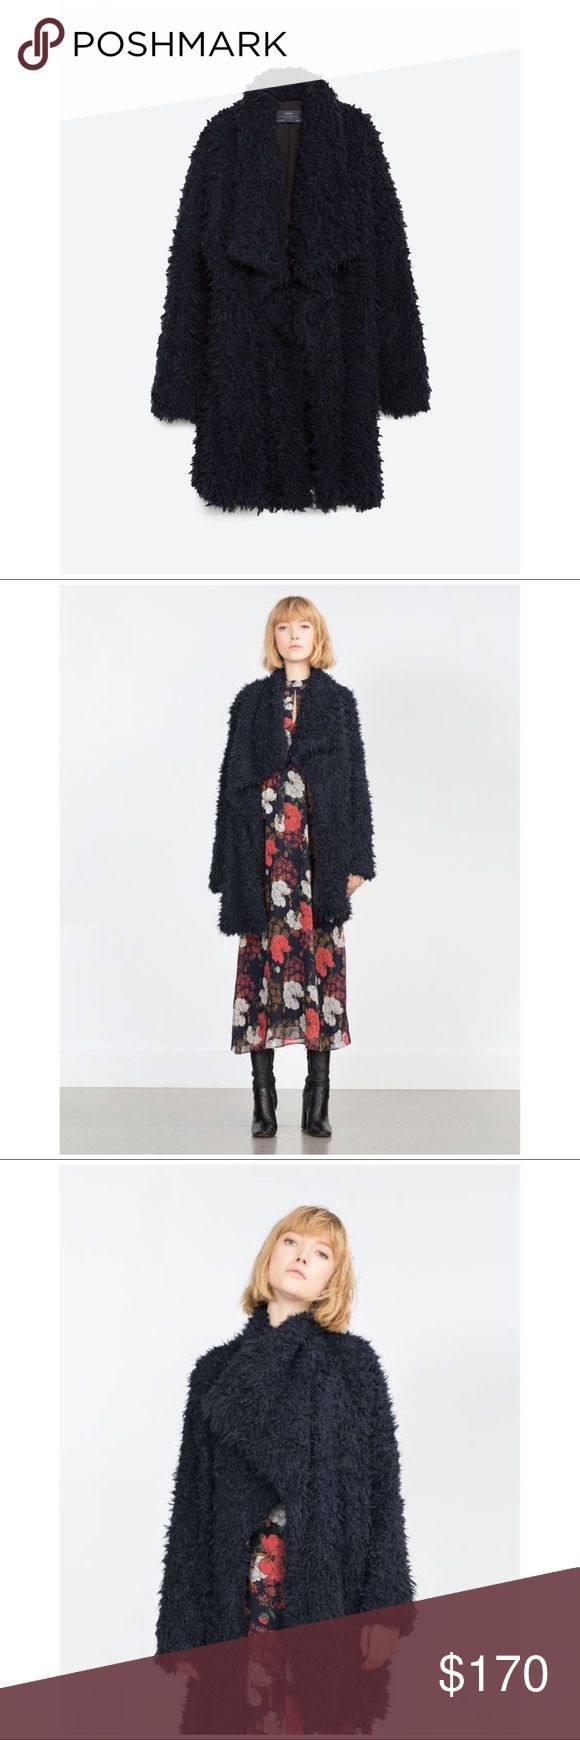 NWT ZARA BASIC 2015-2016 LONG FAUX FUR COAT SZ S This is a brand new long faux fur coat from the Zara Basic Collection. It was released during the 2015-2016 season, and has since been discontinued. It is very rare and very difficult to find.   Details include: long sleeves, long length, an open front style, and large front lapels. The color is a sort of black/dark navy blue. The faux fur is very soft and the inside of the coat is also lined.   Offers welcome!   #zara #zarabasic #fauxfur…